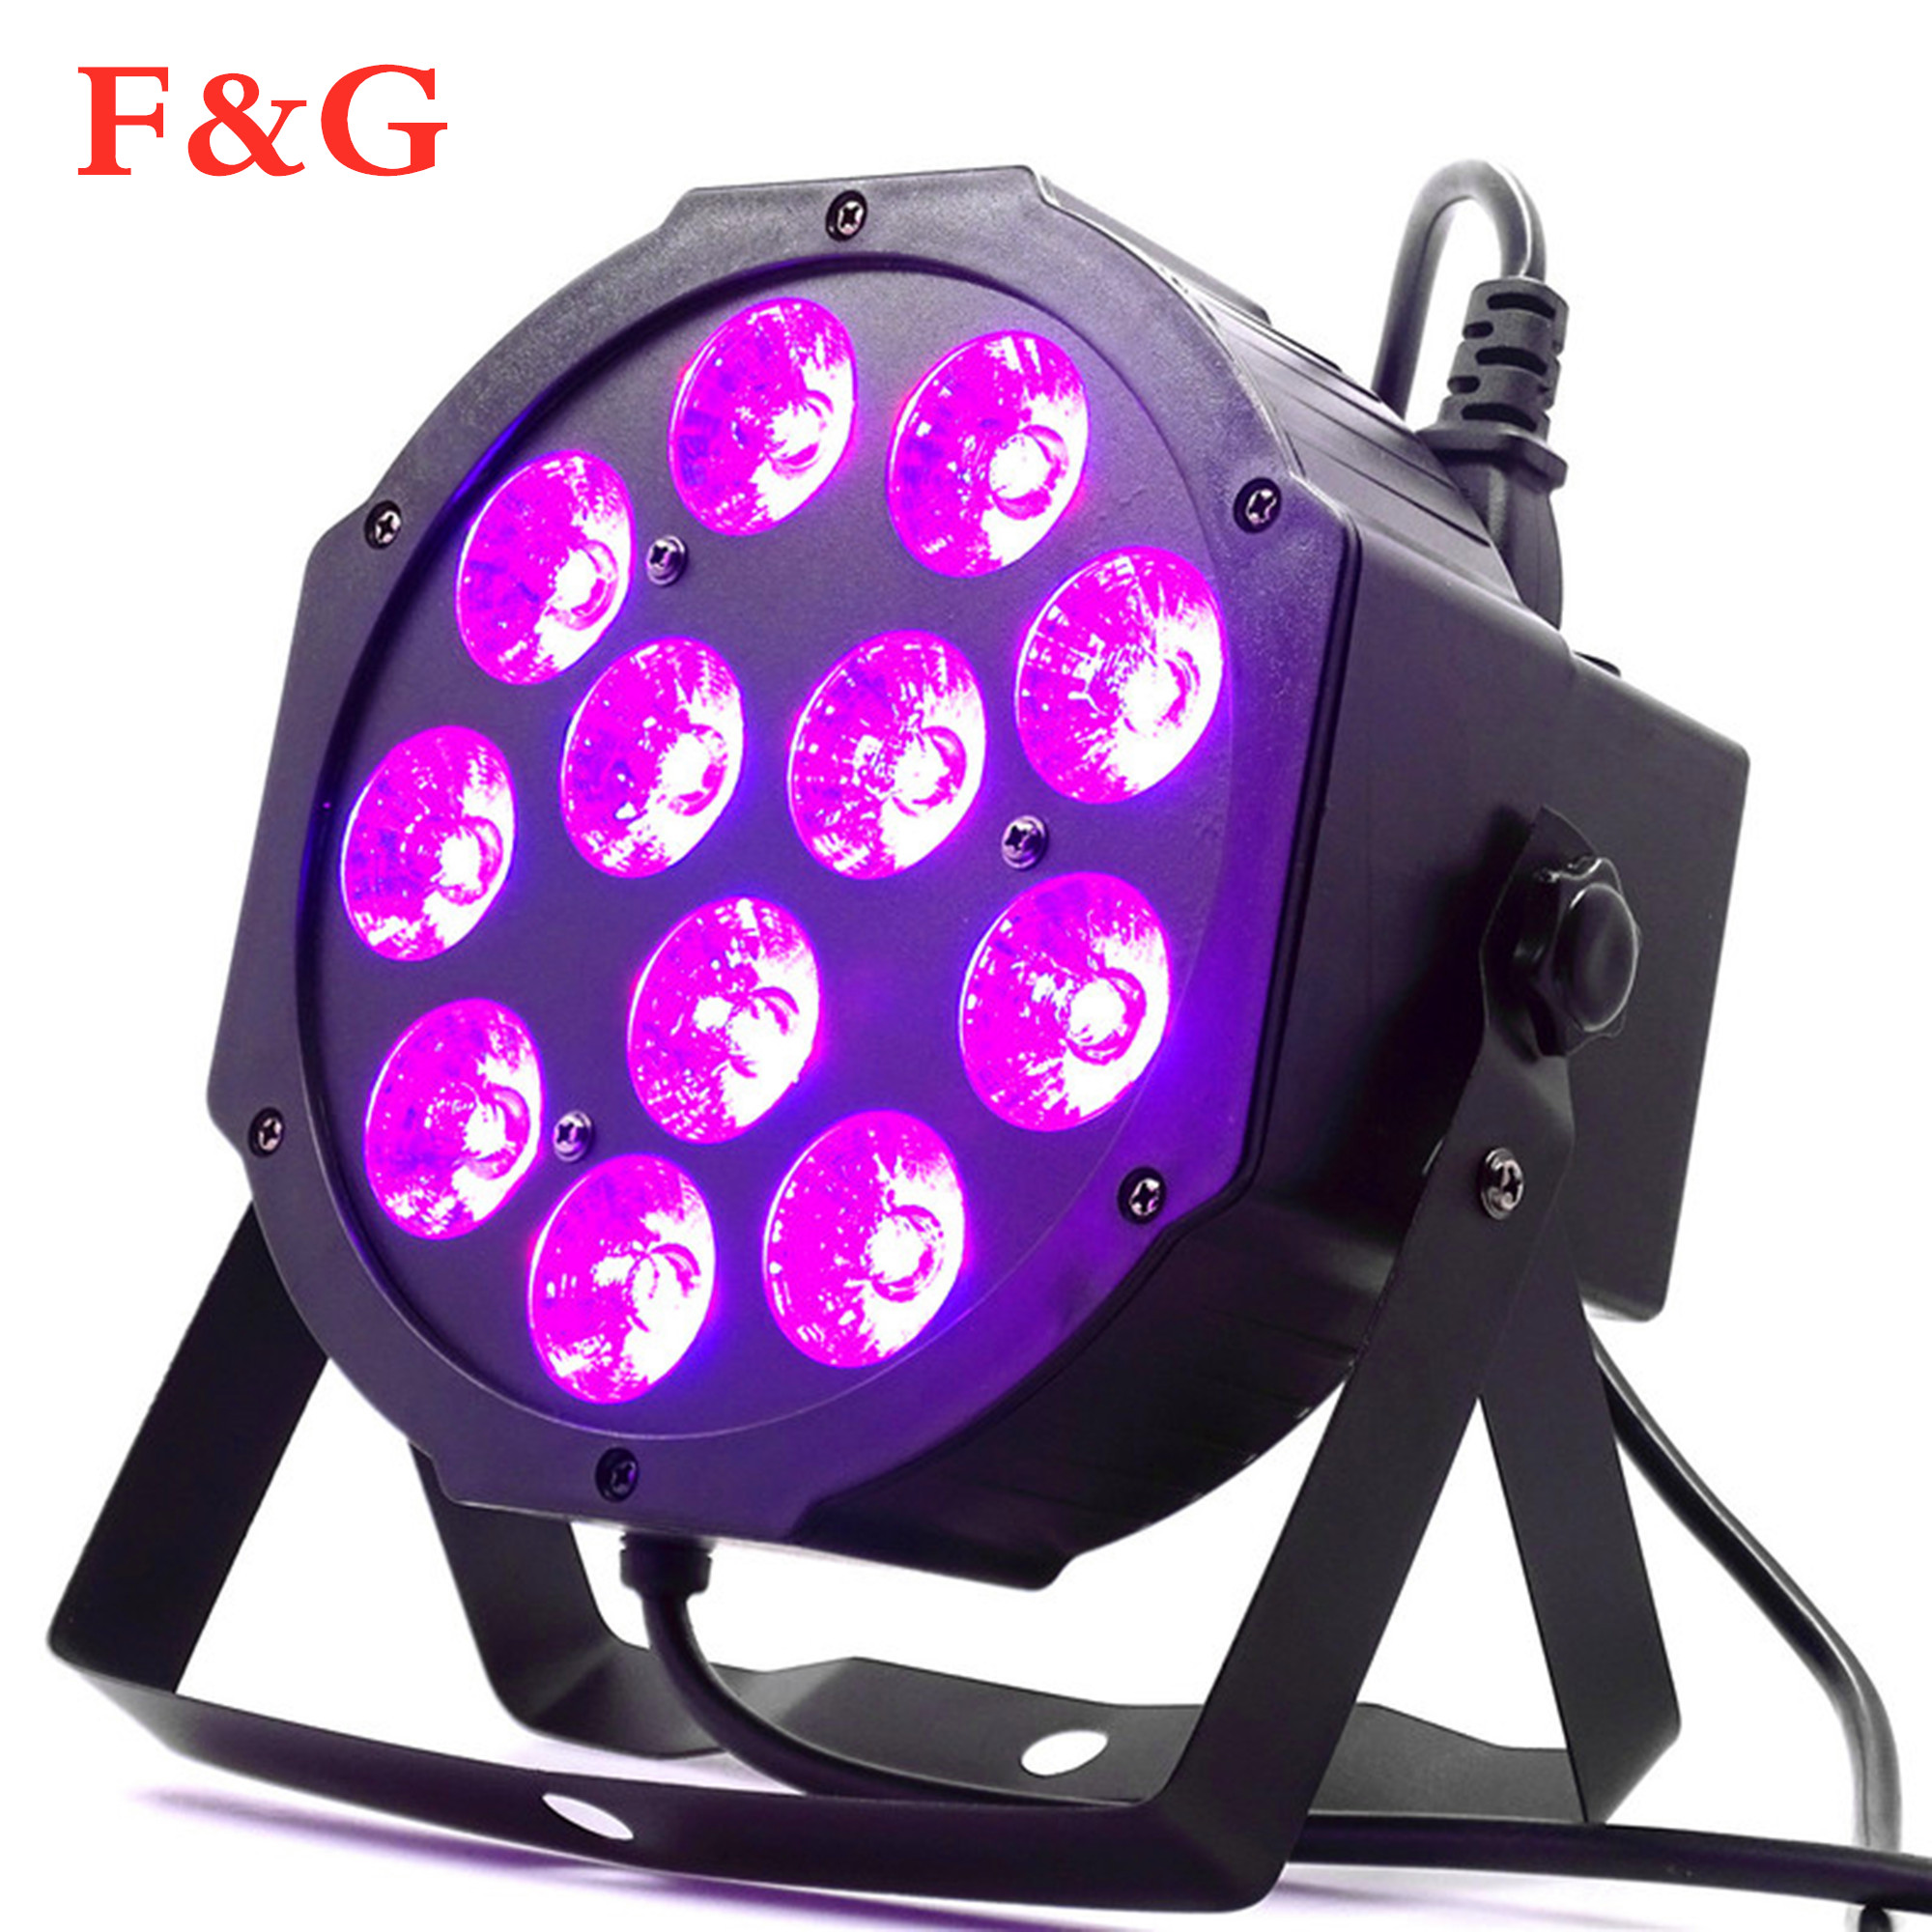 12x12W led Par verlichting 12pcs 12w led lamp kralen RGBW 4in1 flat par led dmx512 disco professioneel podium dj apparatuur